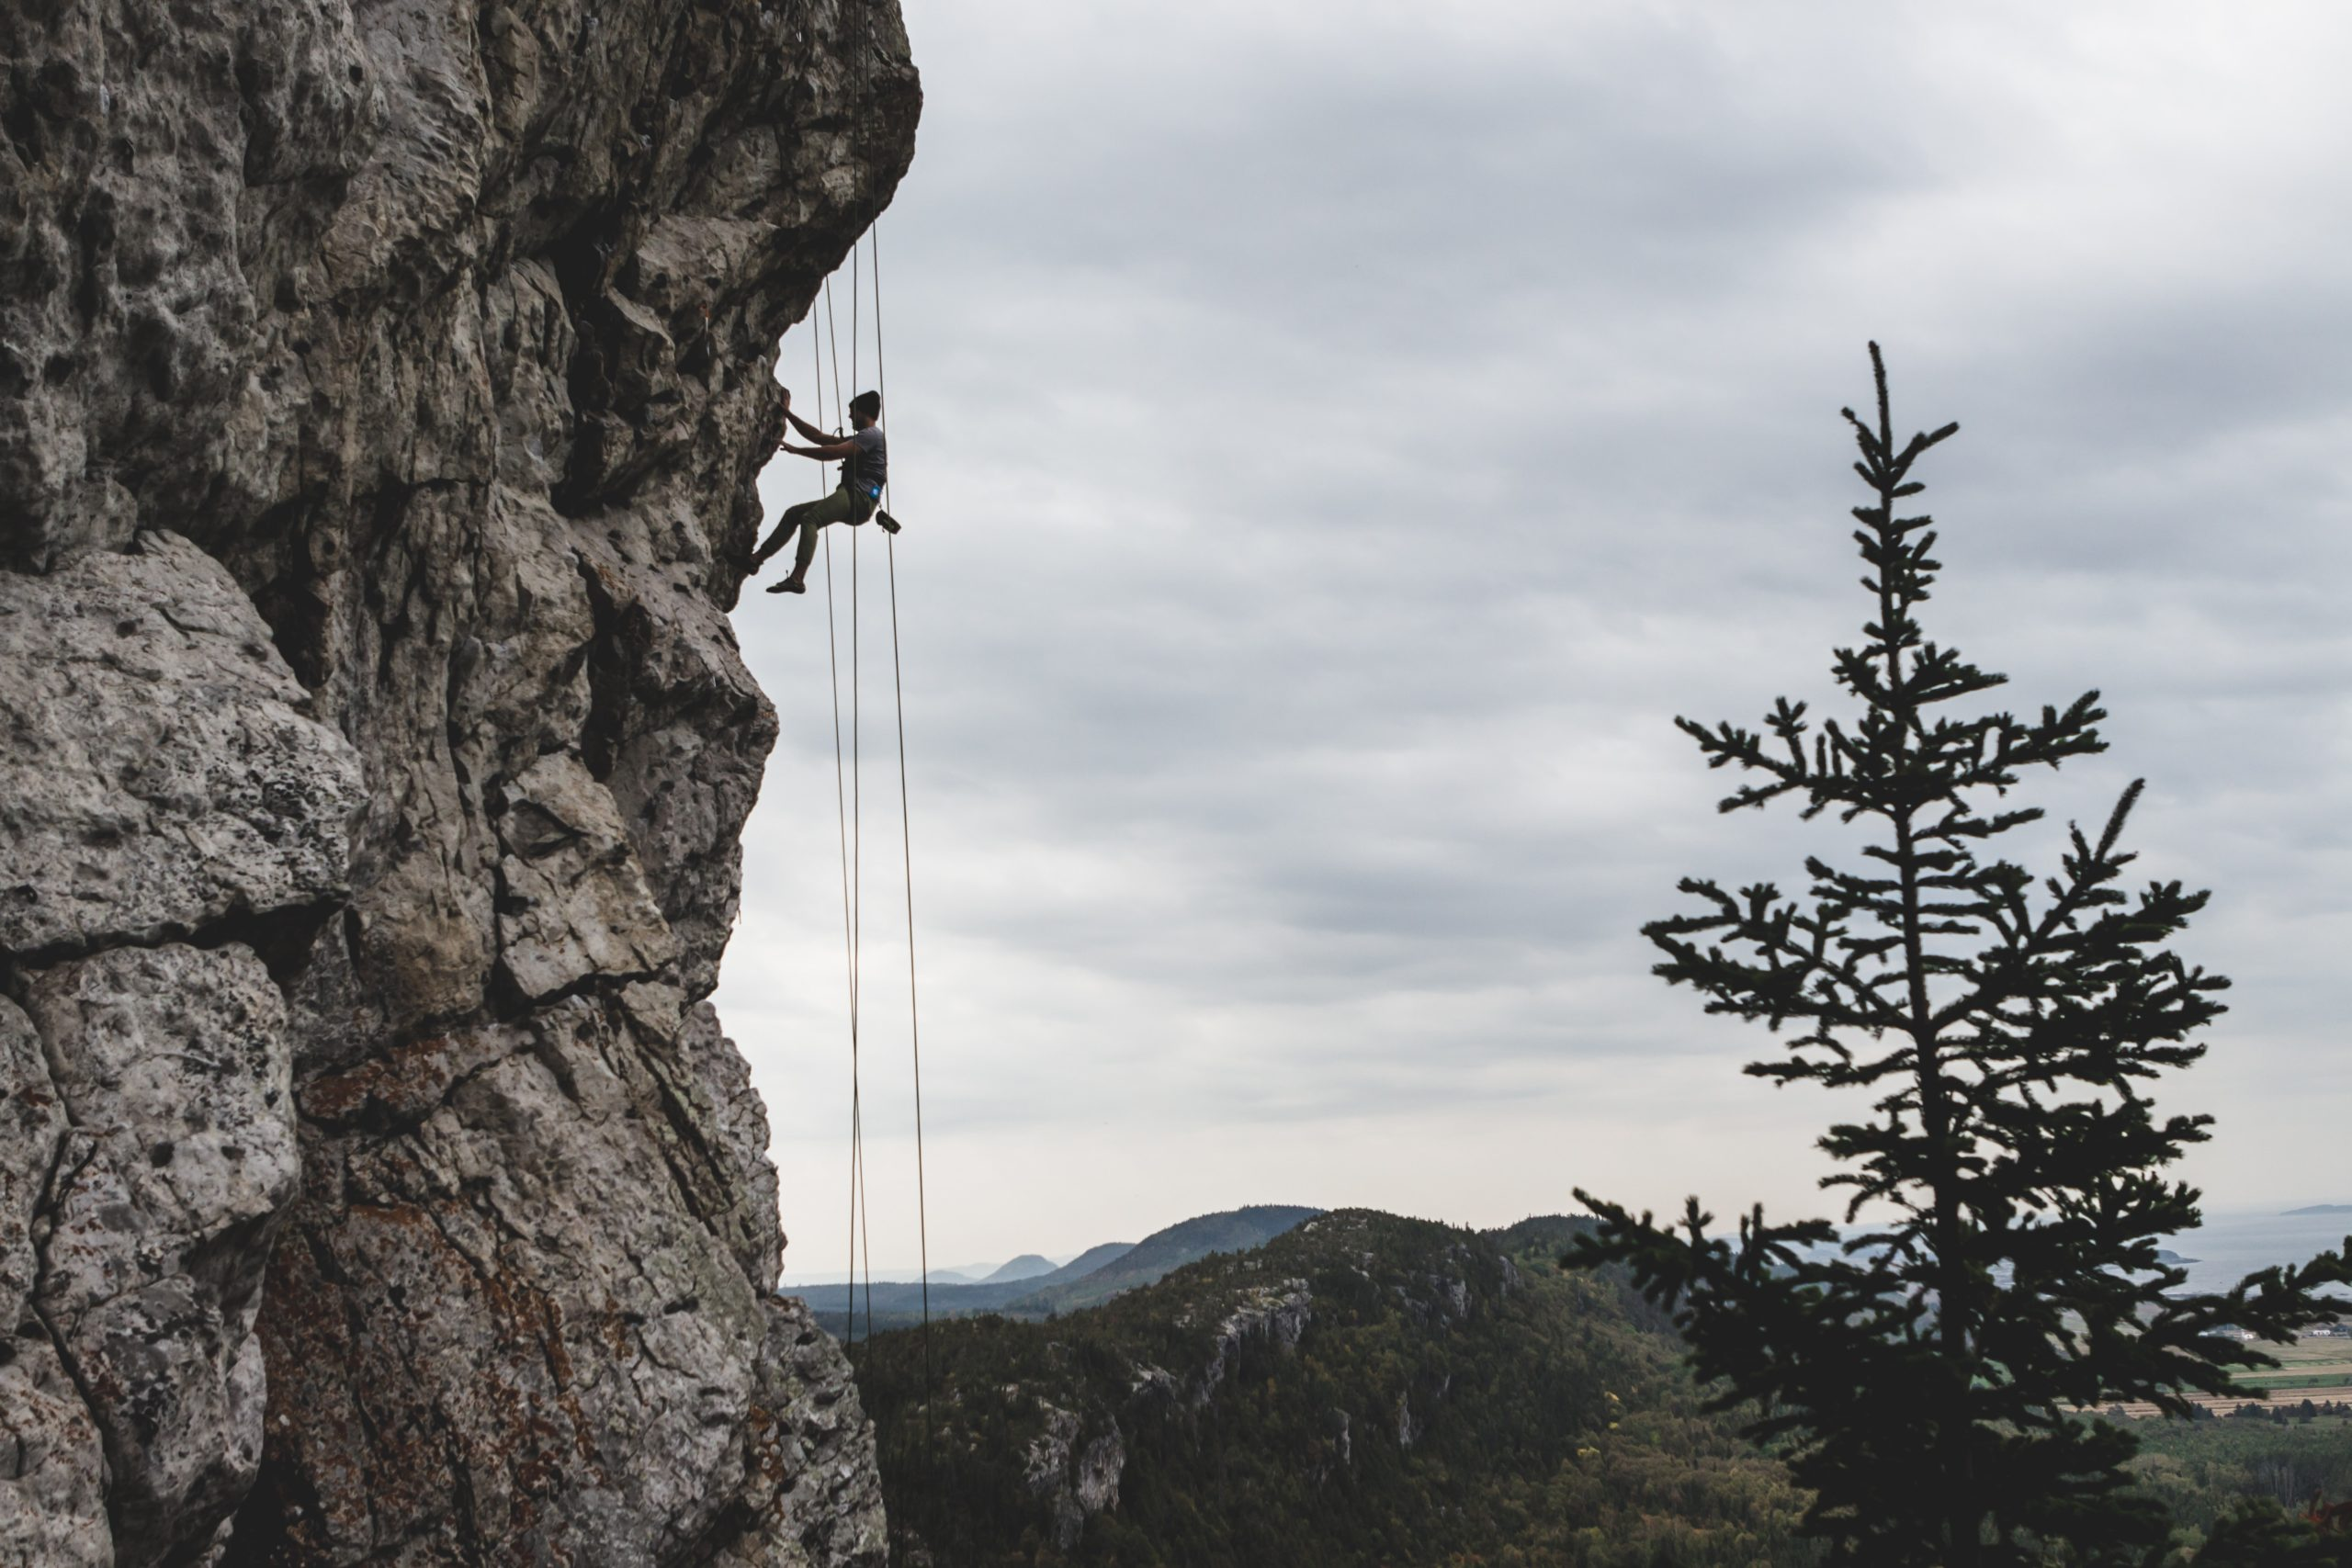 Climbing: A Typical And Adventurous Art